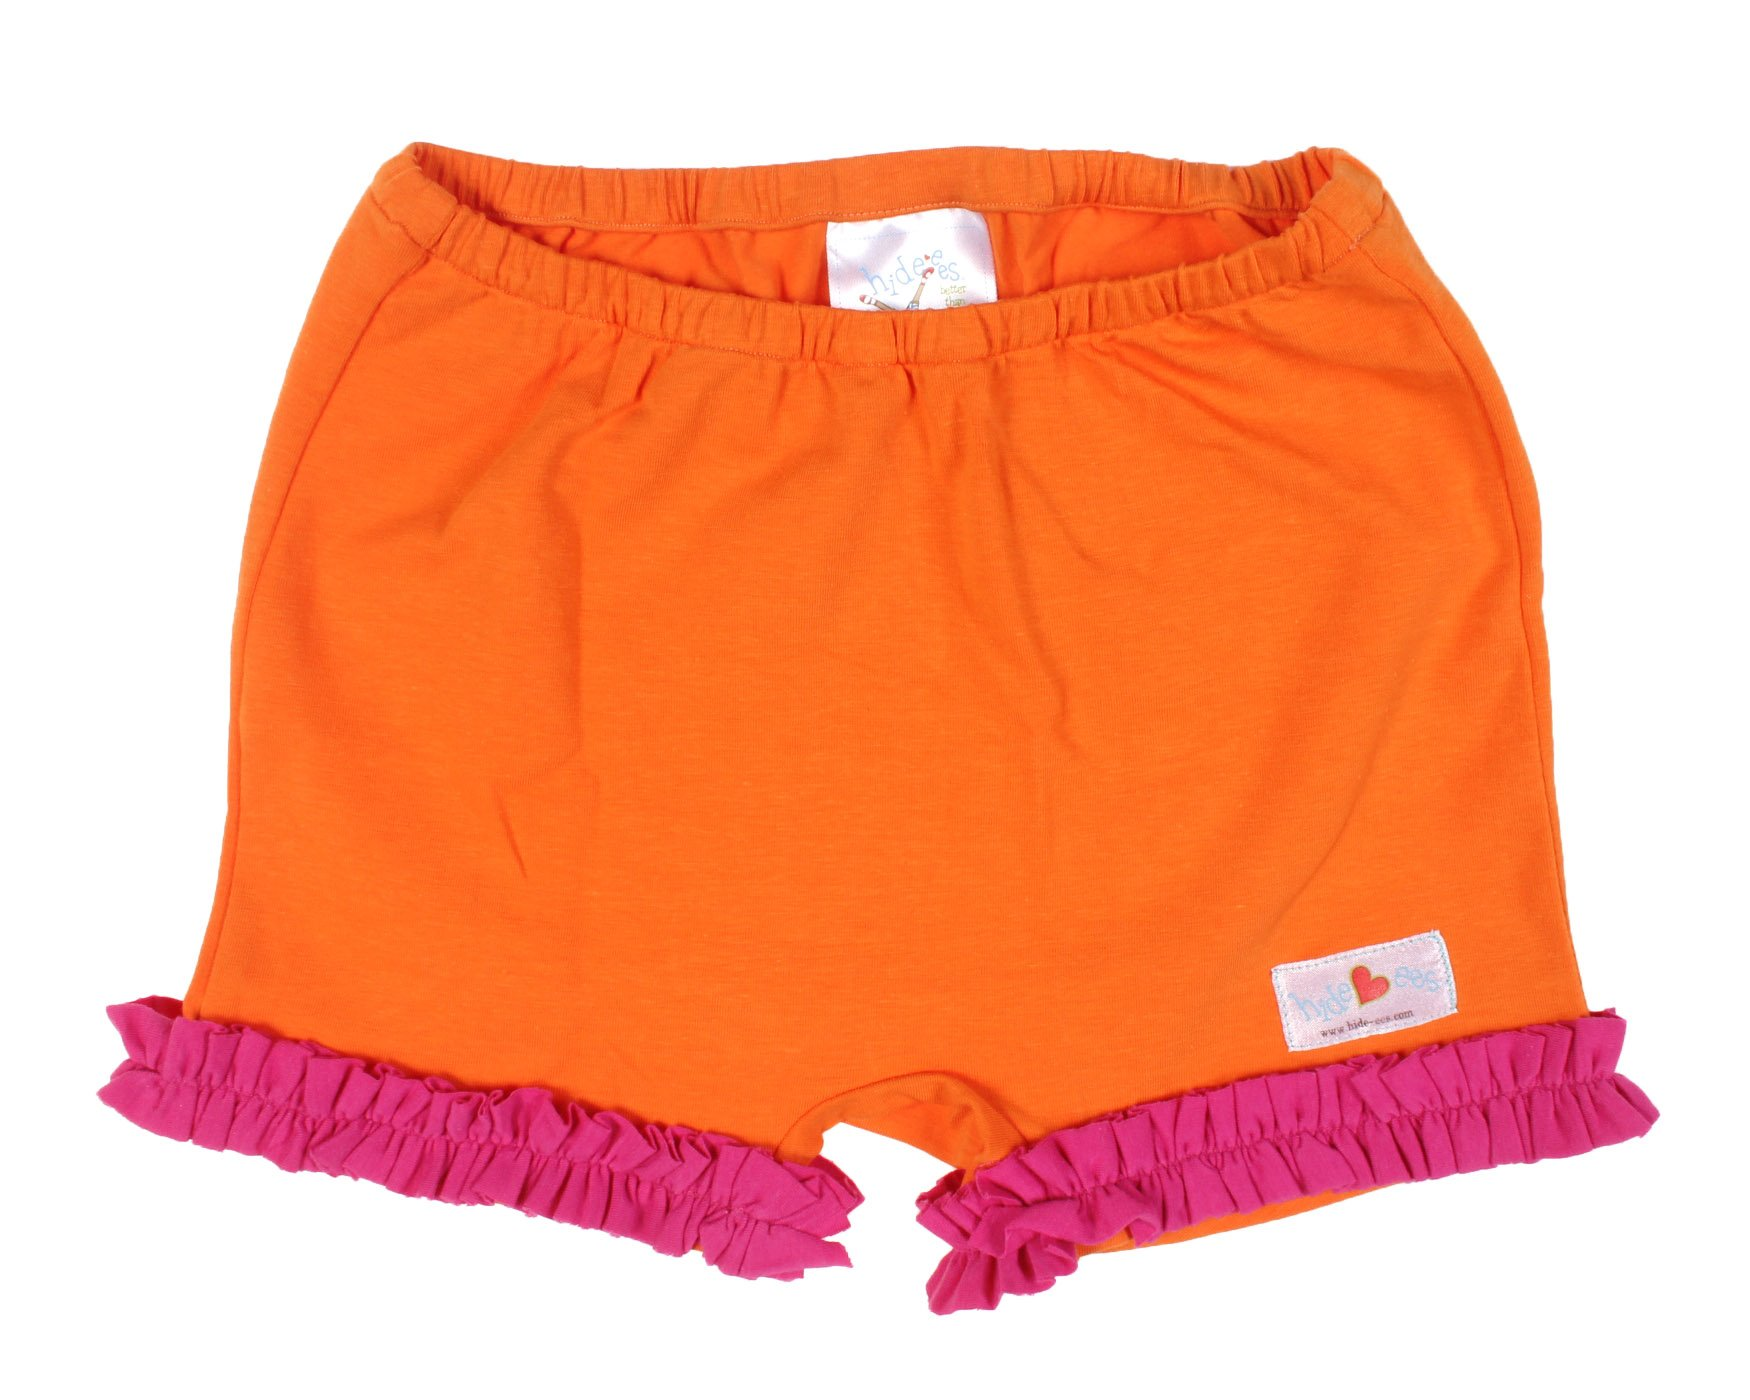 Hide-ees Better Than Bloomers Girls Under Dress Shorts WITH Ruffle (2T-4T, Clementine Cha Cha)